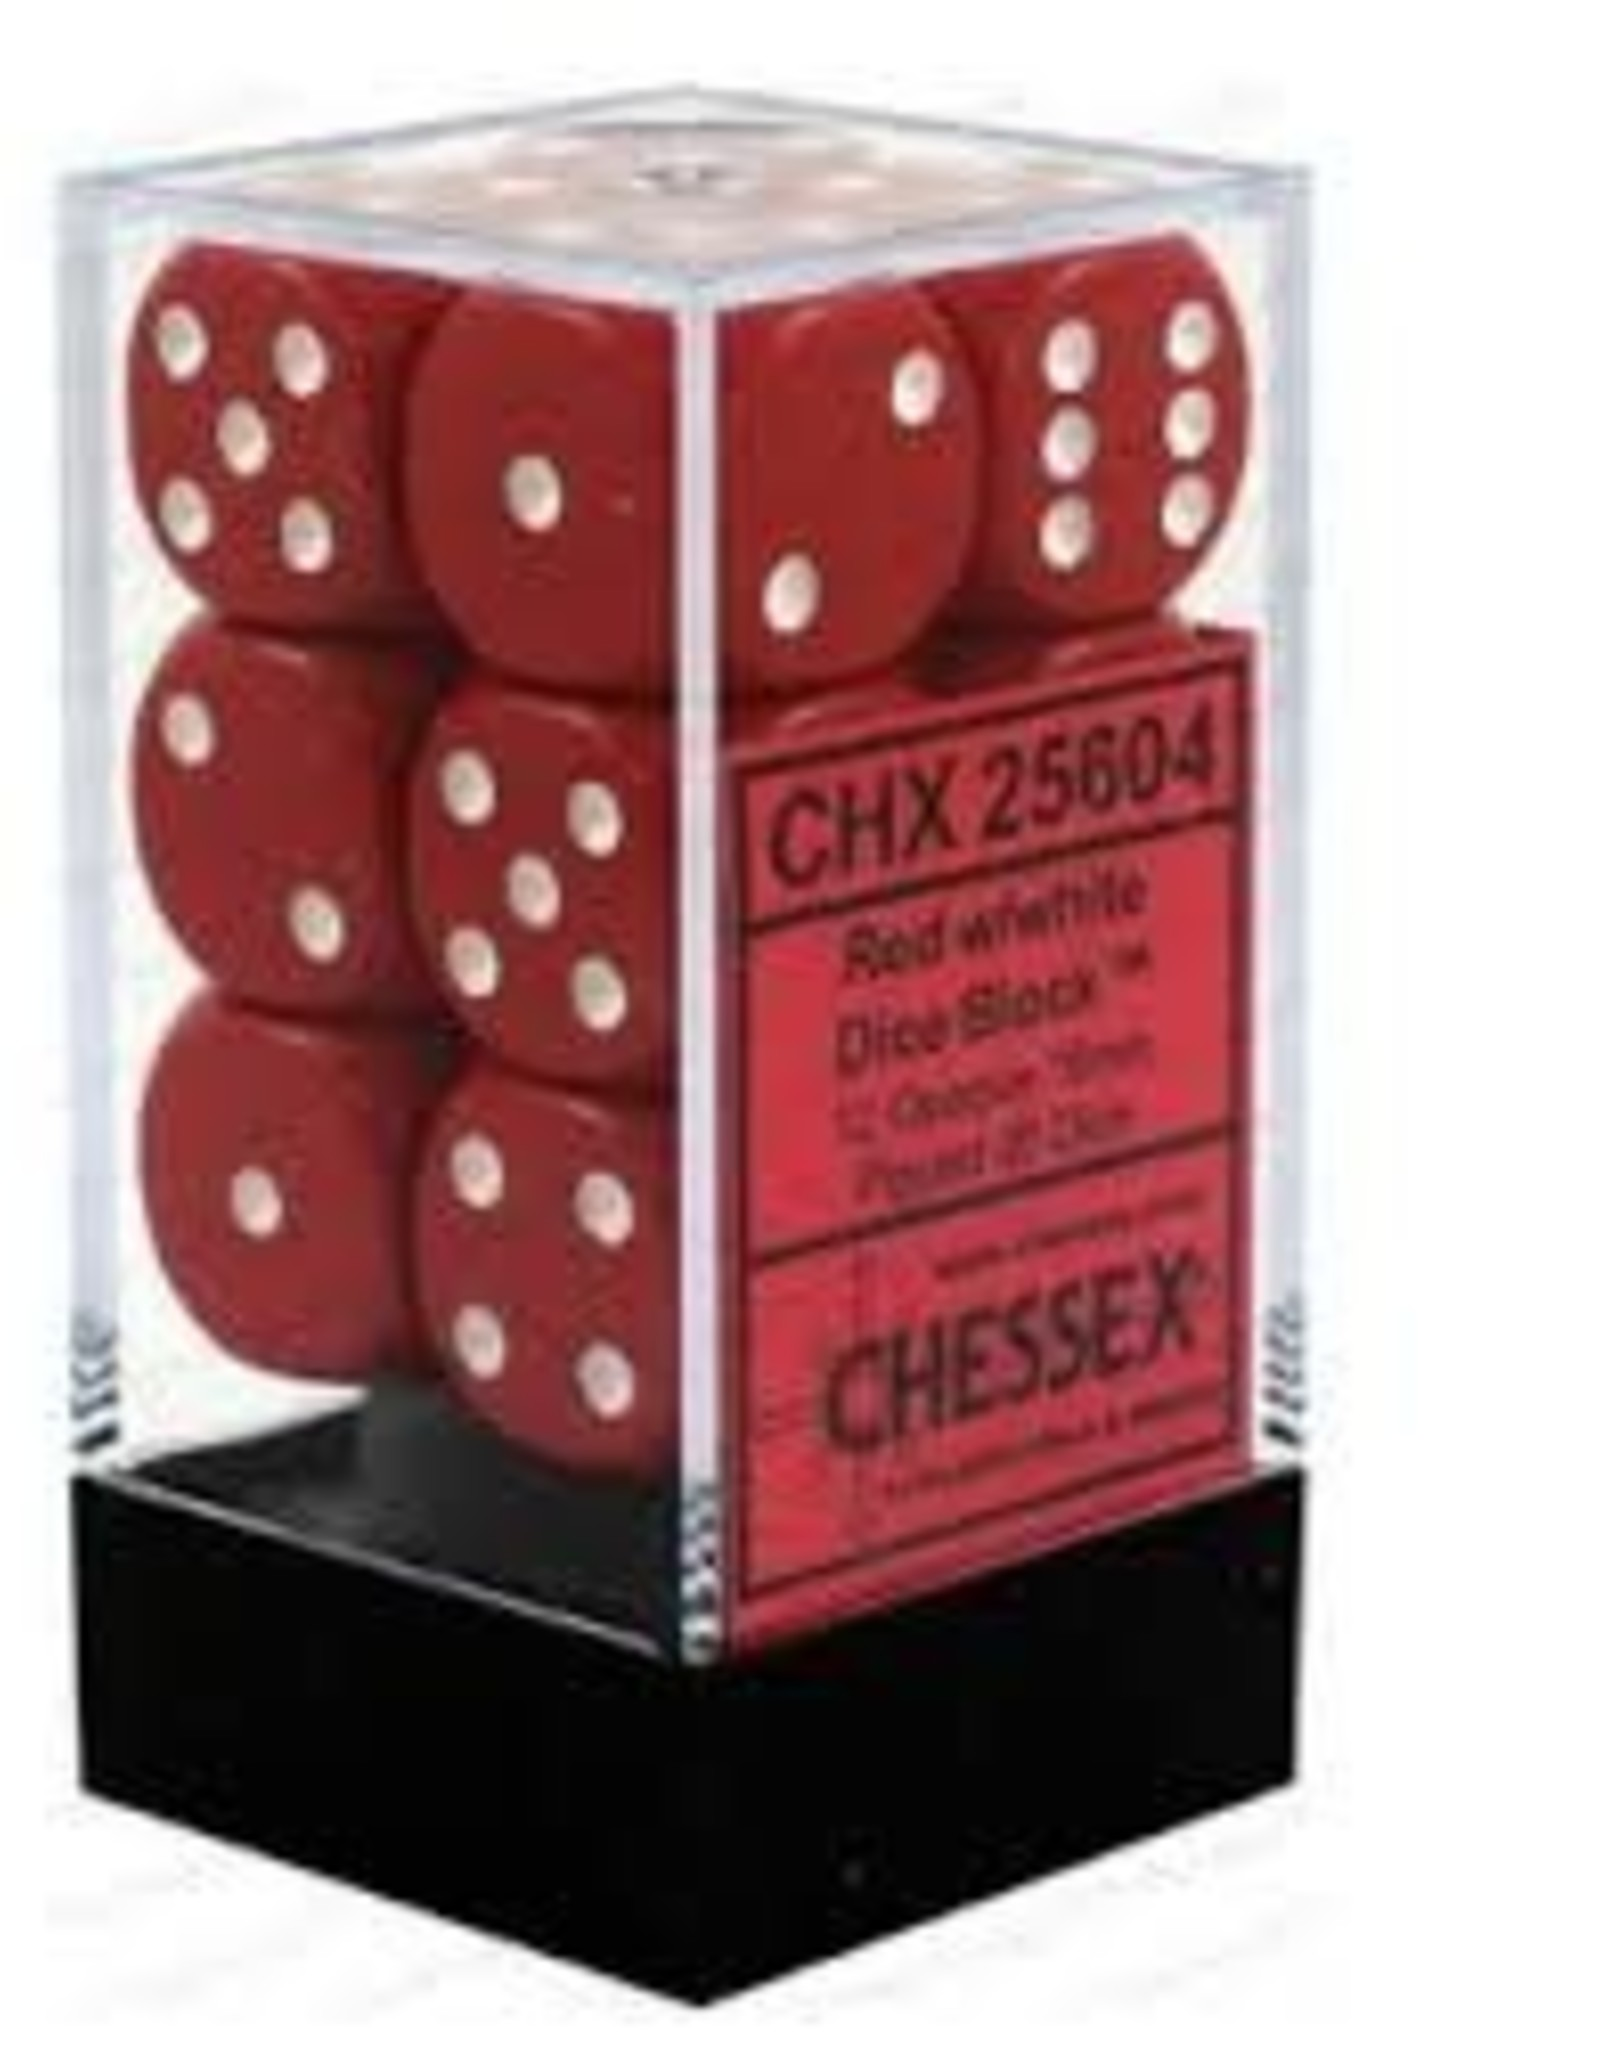 Chessex Dice - 12D6 Red & White